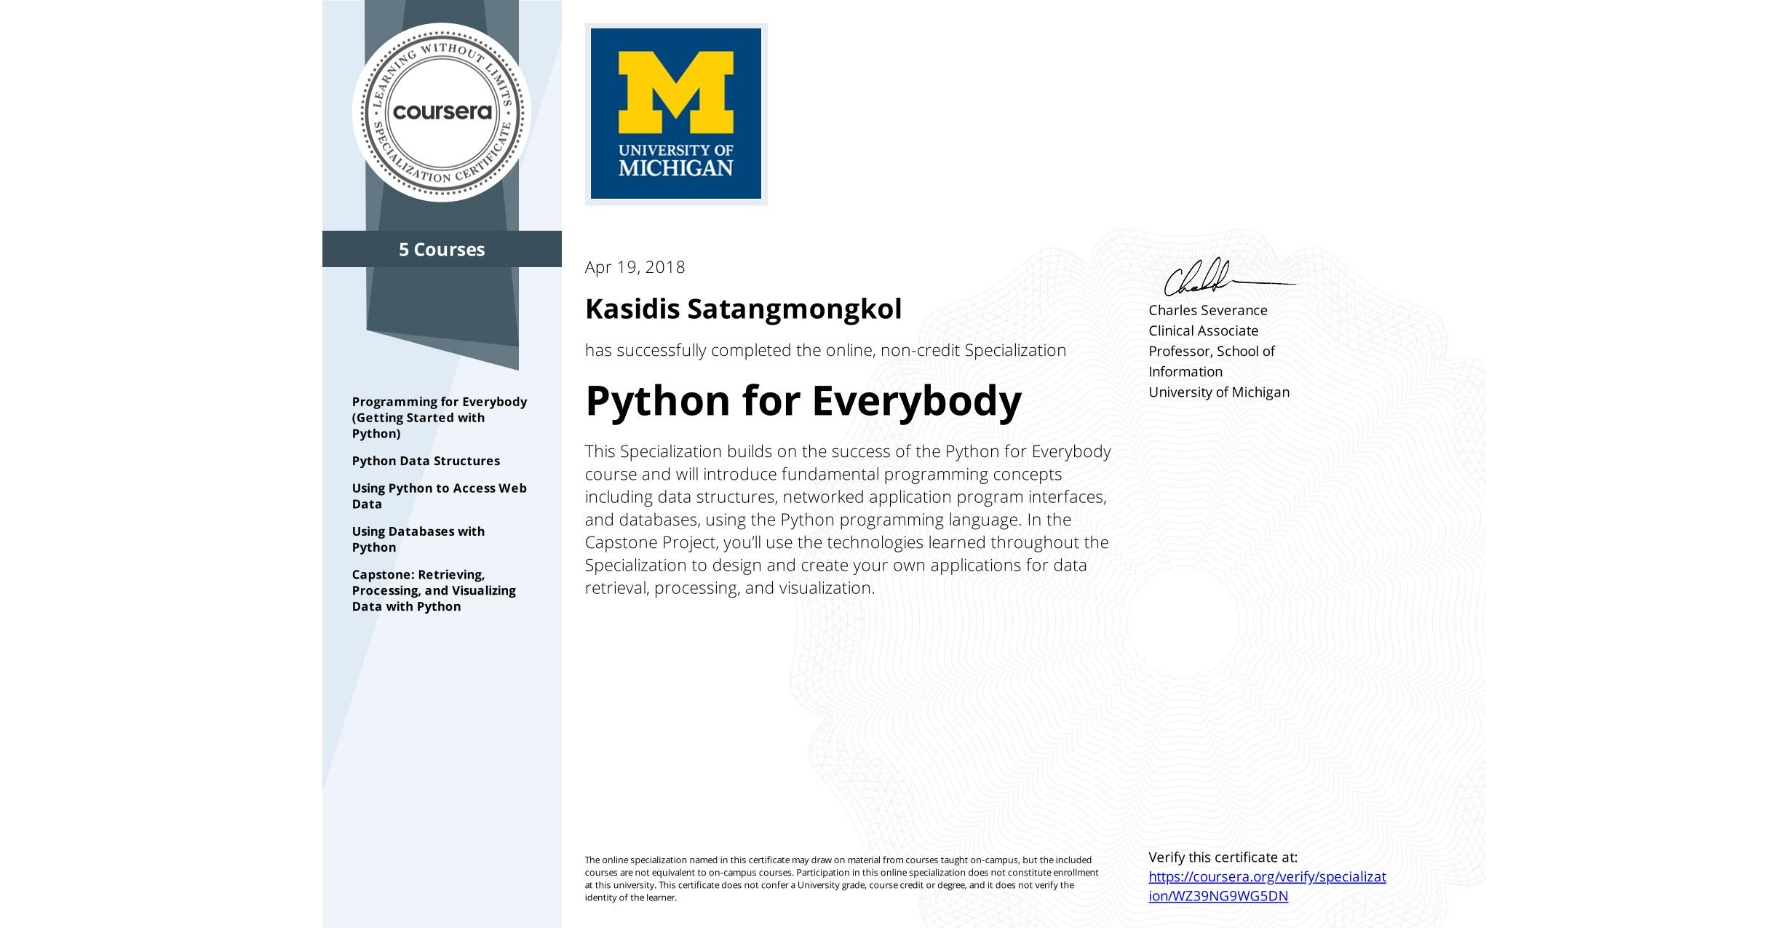 View certificate for KASIDIS SATANGMONGKOL, Python for Everybody, offered through Coursera. This Specialization builds on the success of the Python for Everybody course and will introduce fundamental programming concepts including data structures, networked application program interfaces, and databases, using the Python programming language. In the Capstone Project, you'll use the technologies learned throughout the Specialization to design and create your own applications for data retrieval, processing, and visualization.